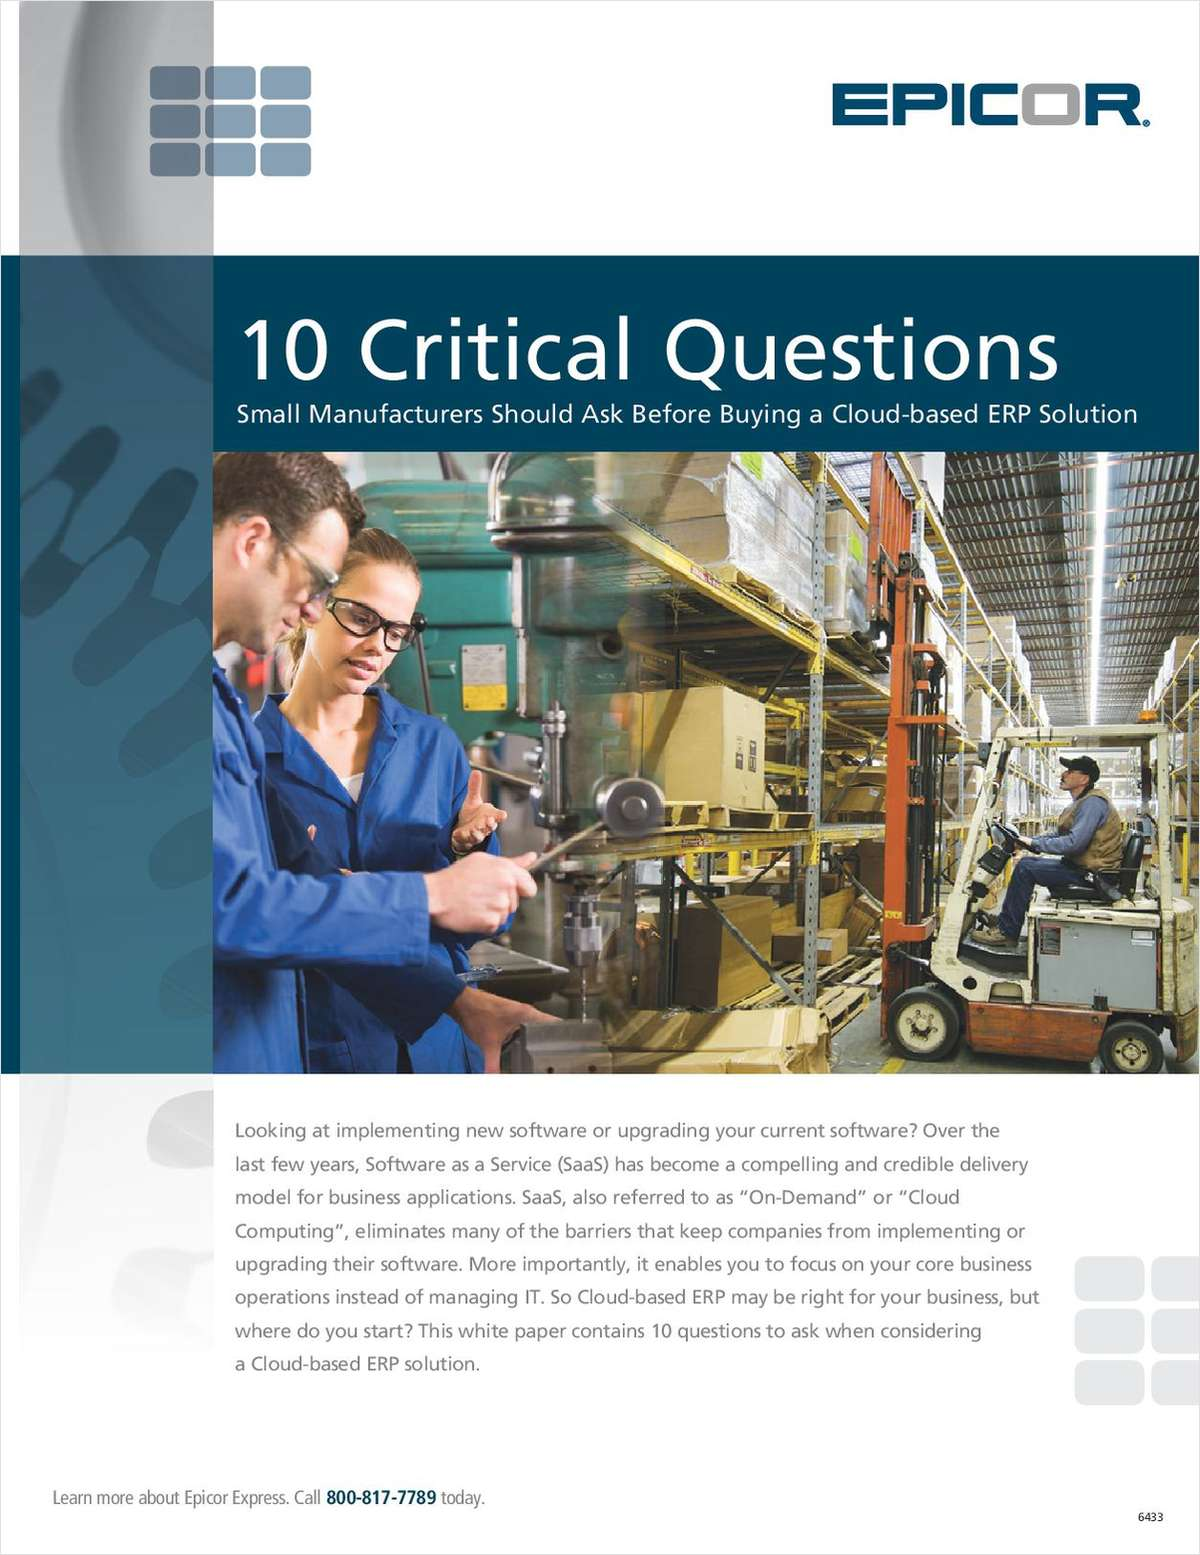 10 Critical Questions Small Manufacturers Should Ask Before Buying a Cloud-based ERP Solution